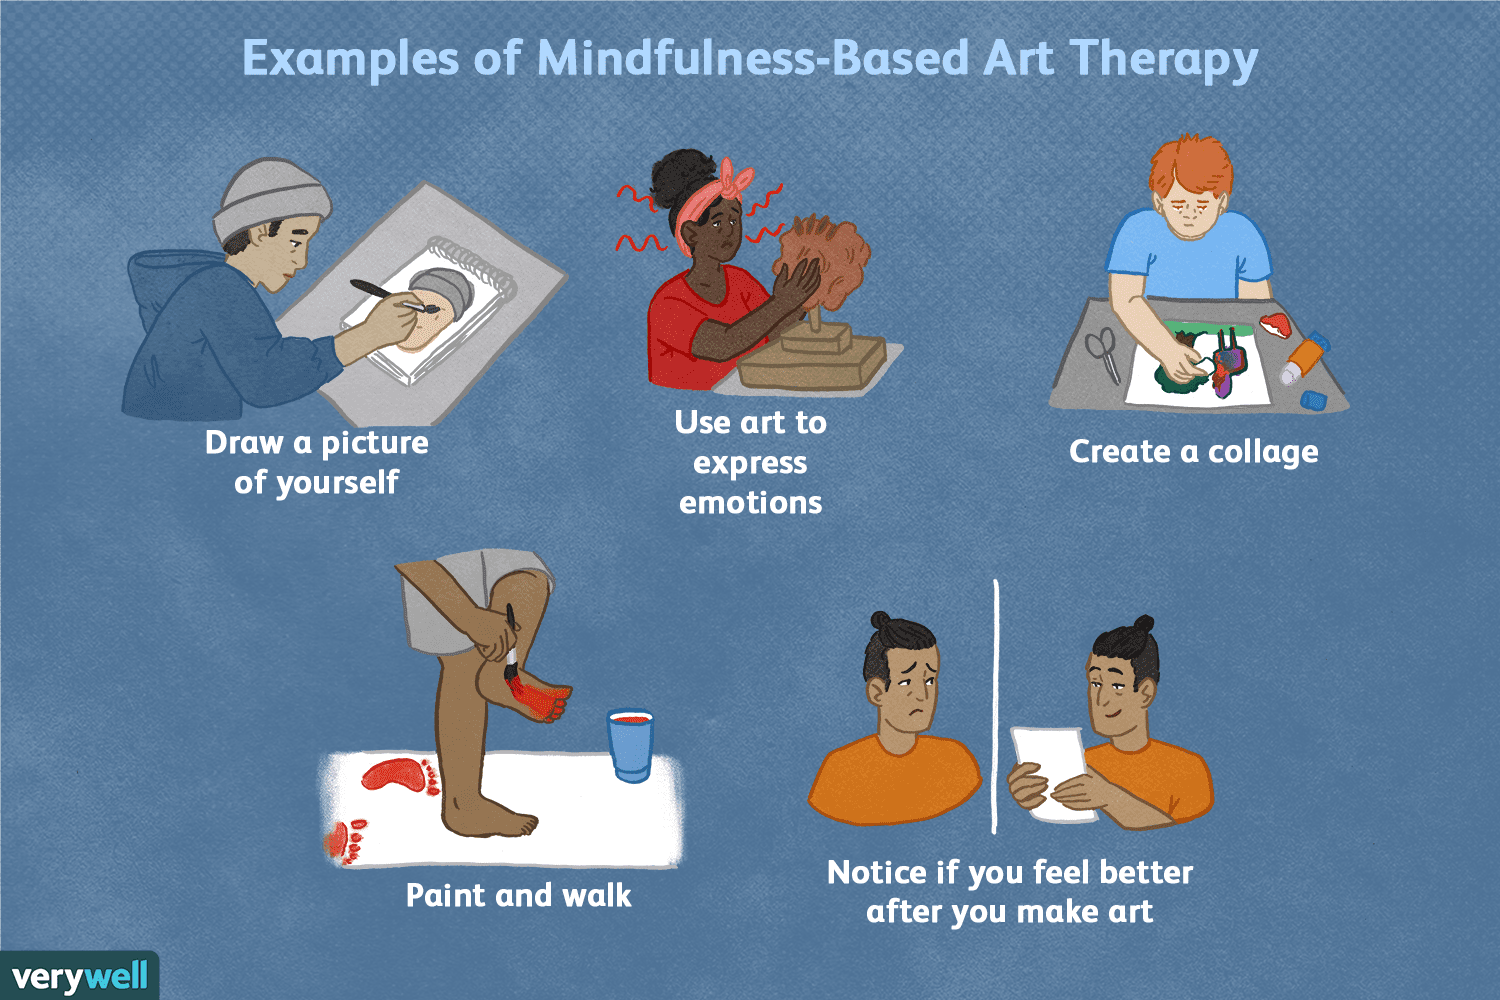 Examples of mindfulness-based art therapy